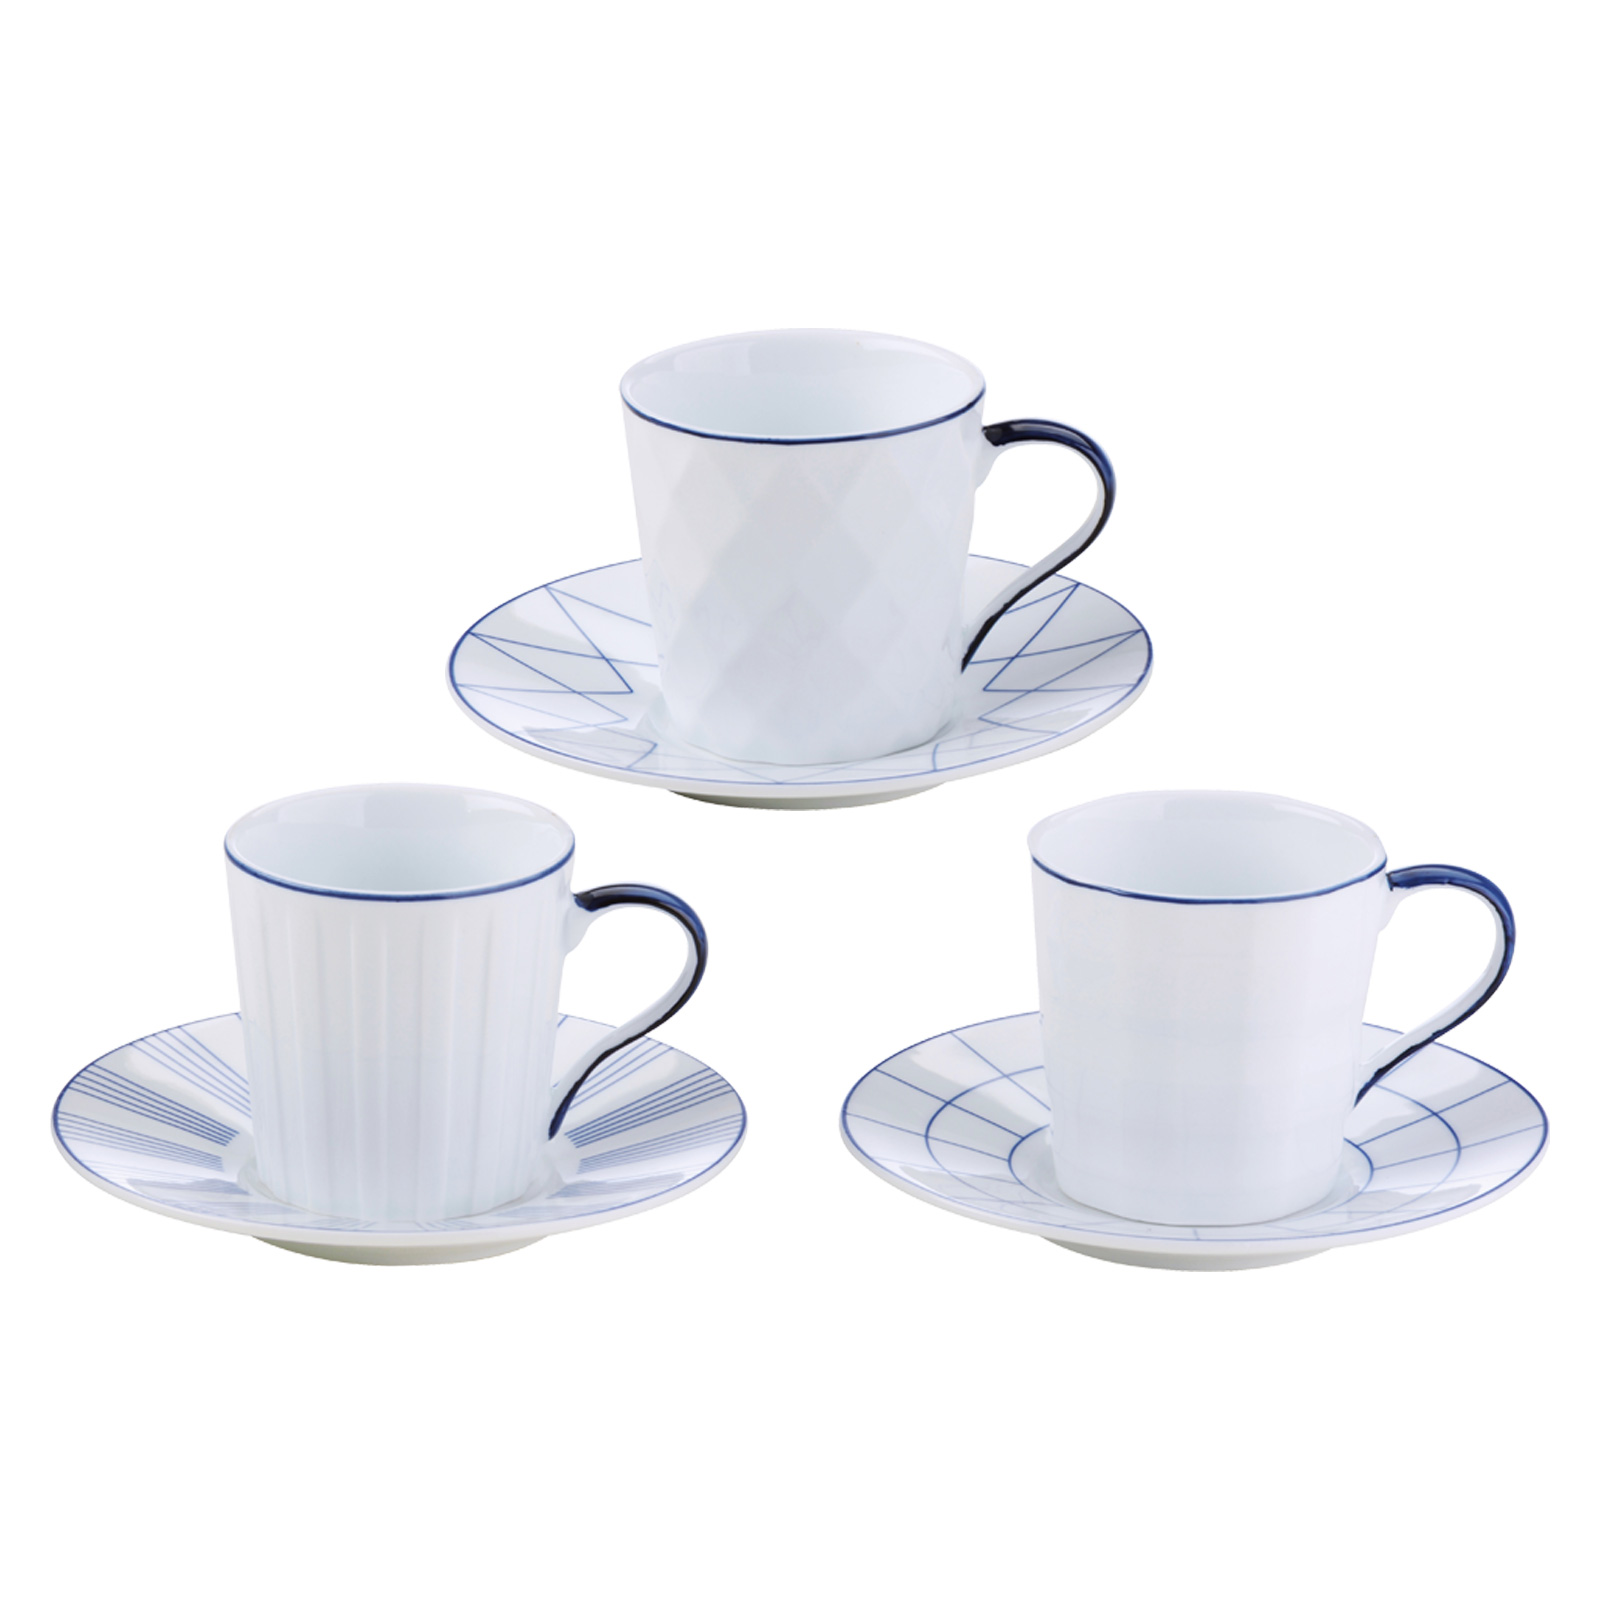 Set of 3 Lux Espresso Cups & Saucers Blue